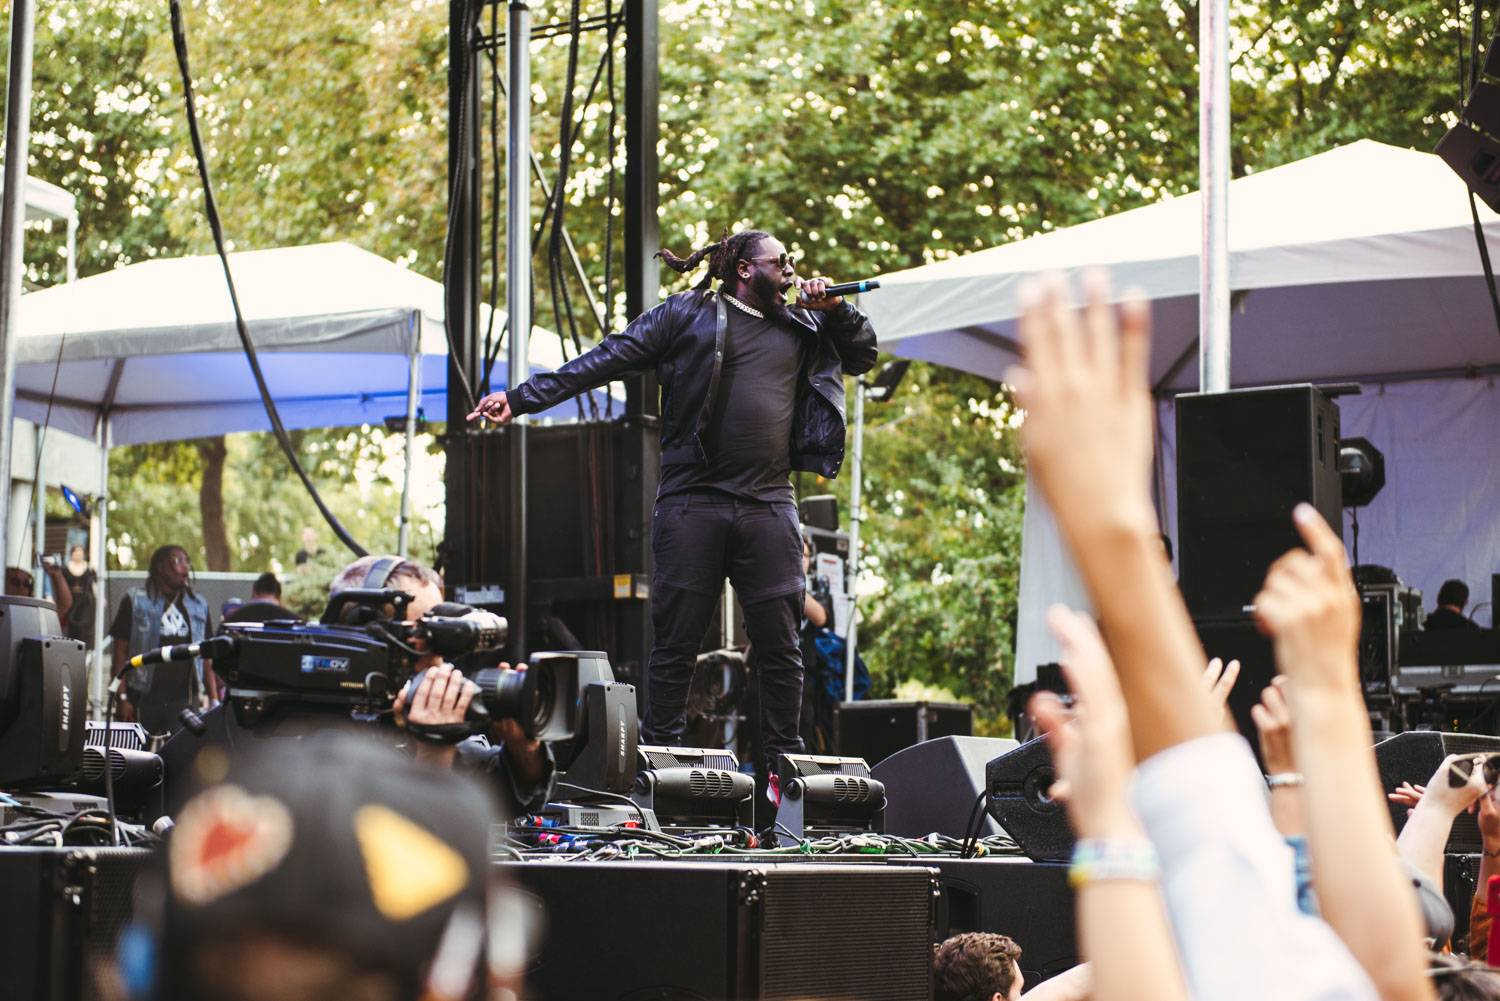 T-Pain at the Bumbershoot Music Festival 2018 - Day 2. Sept 1 2018. Pavel Boiko photo.